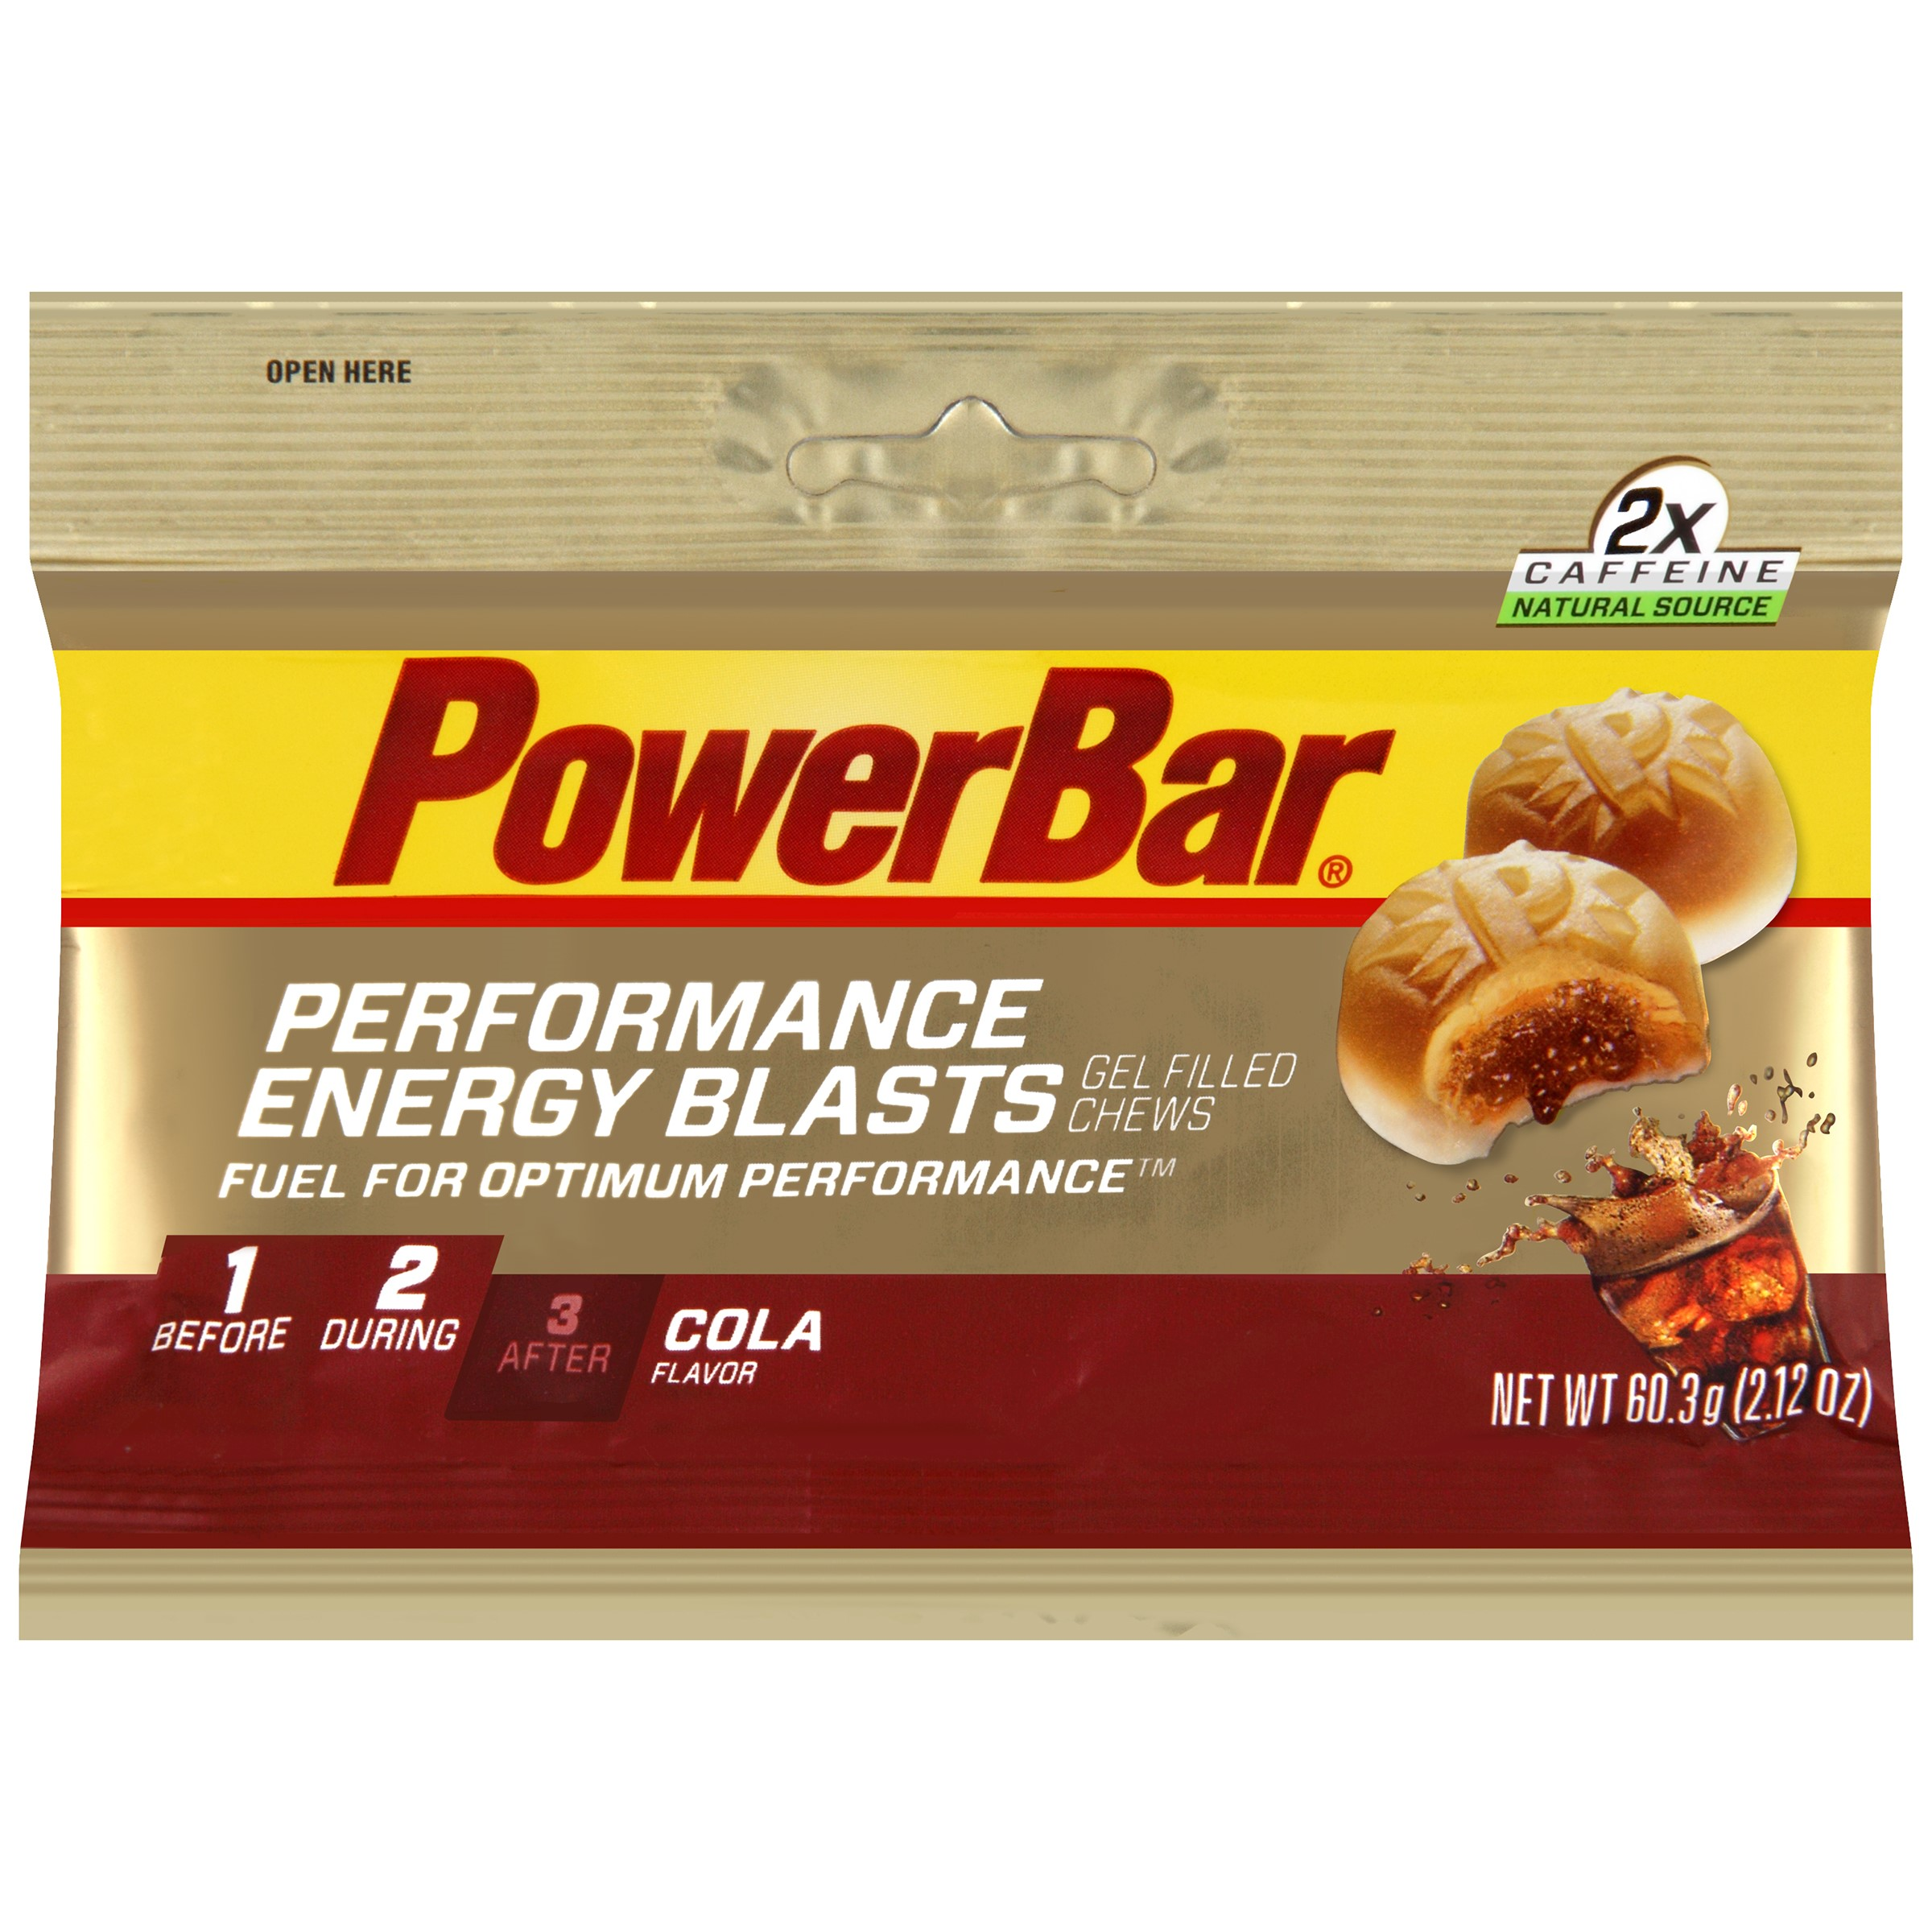 PowerBar Performance Energy Blasts, Cola 2.12 Oz (Innerpack of 12)